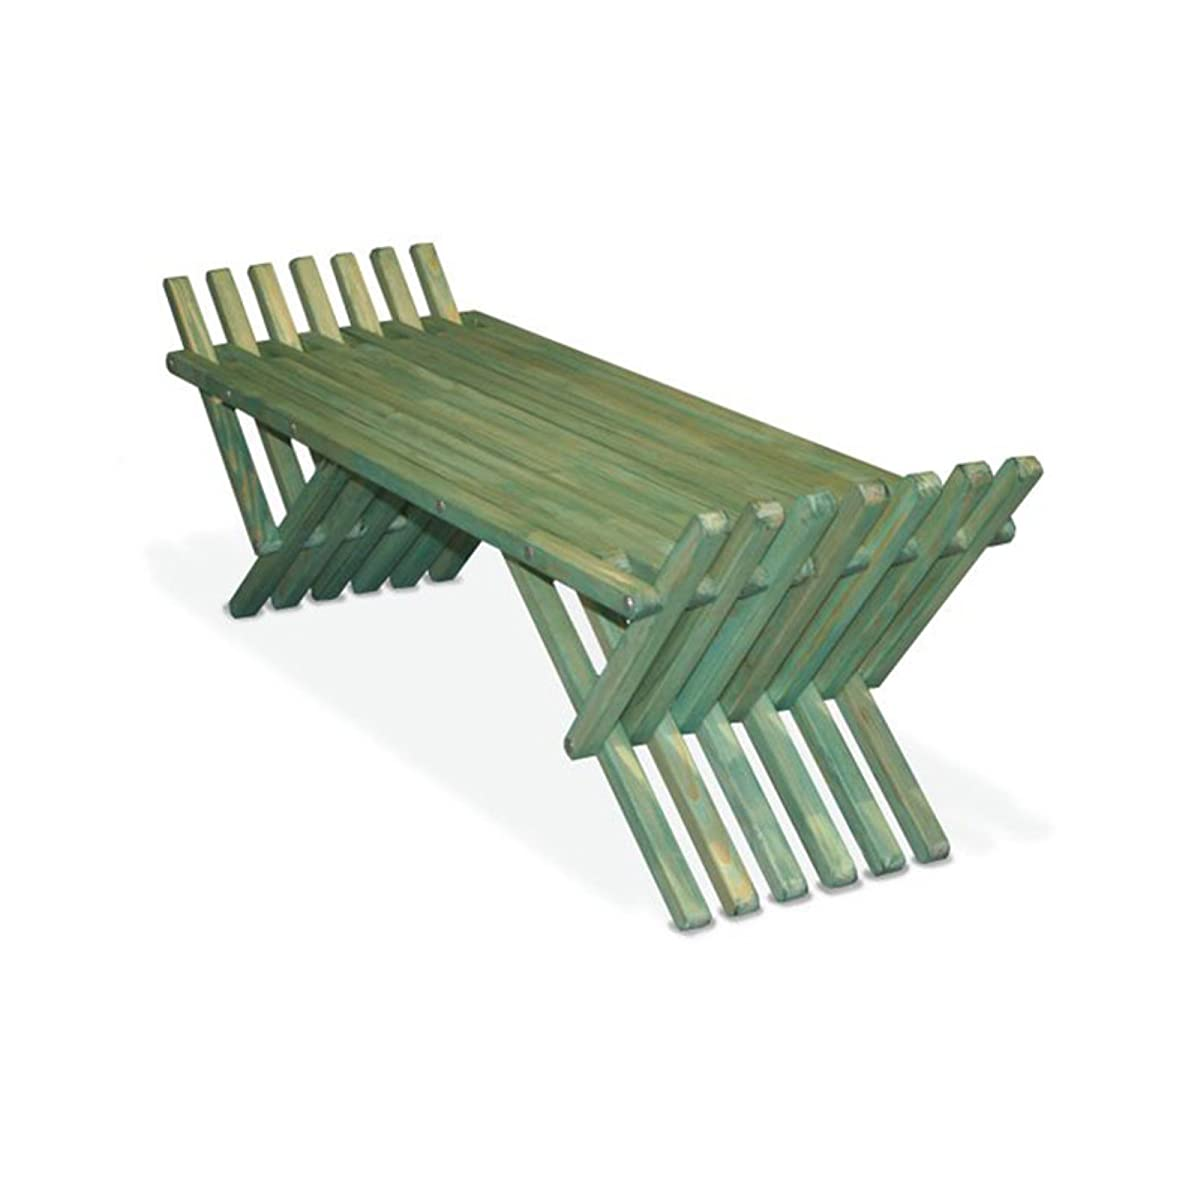 GloDea Xquare French X90 Wooden Backless Garden Bench